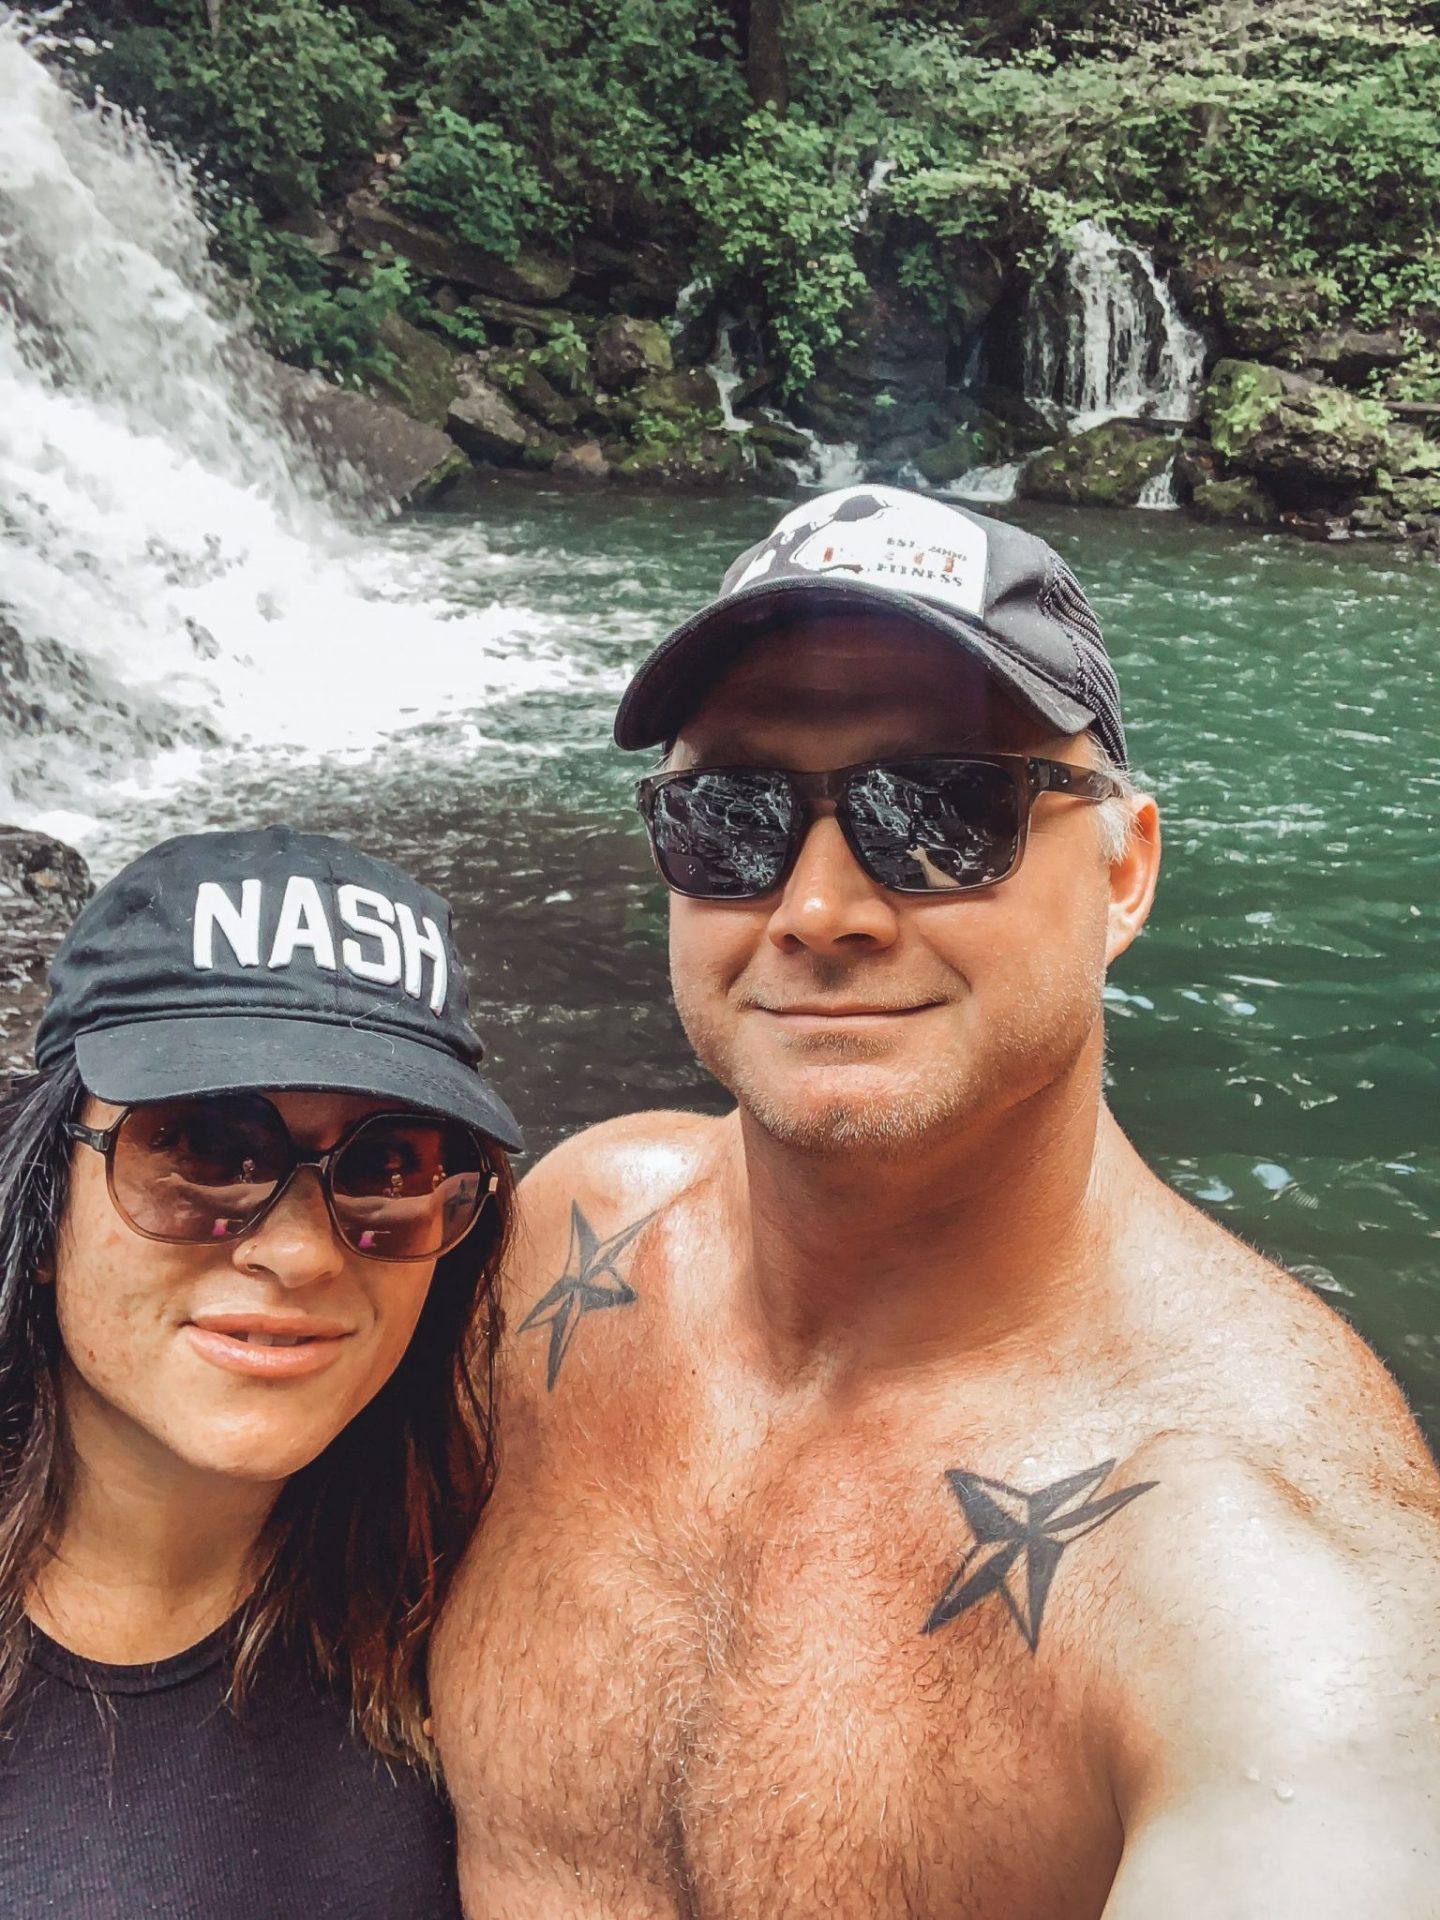 Family-Friendly Waterfall Hiking Trails in Nashville, TN by popular Nashville blog, Modern Day Moguls: image of a man and woman taking a selfie next to Rutledge Falls in Tullahoma, TN.